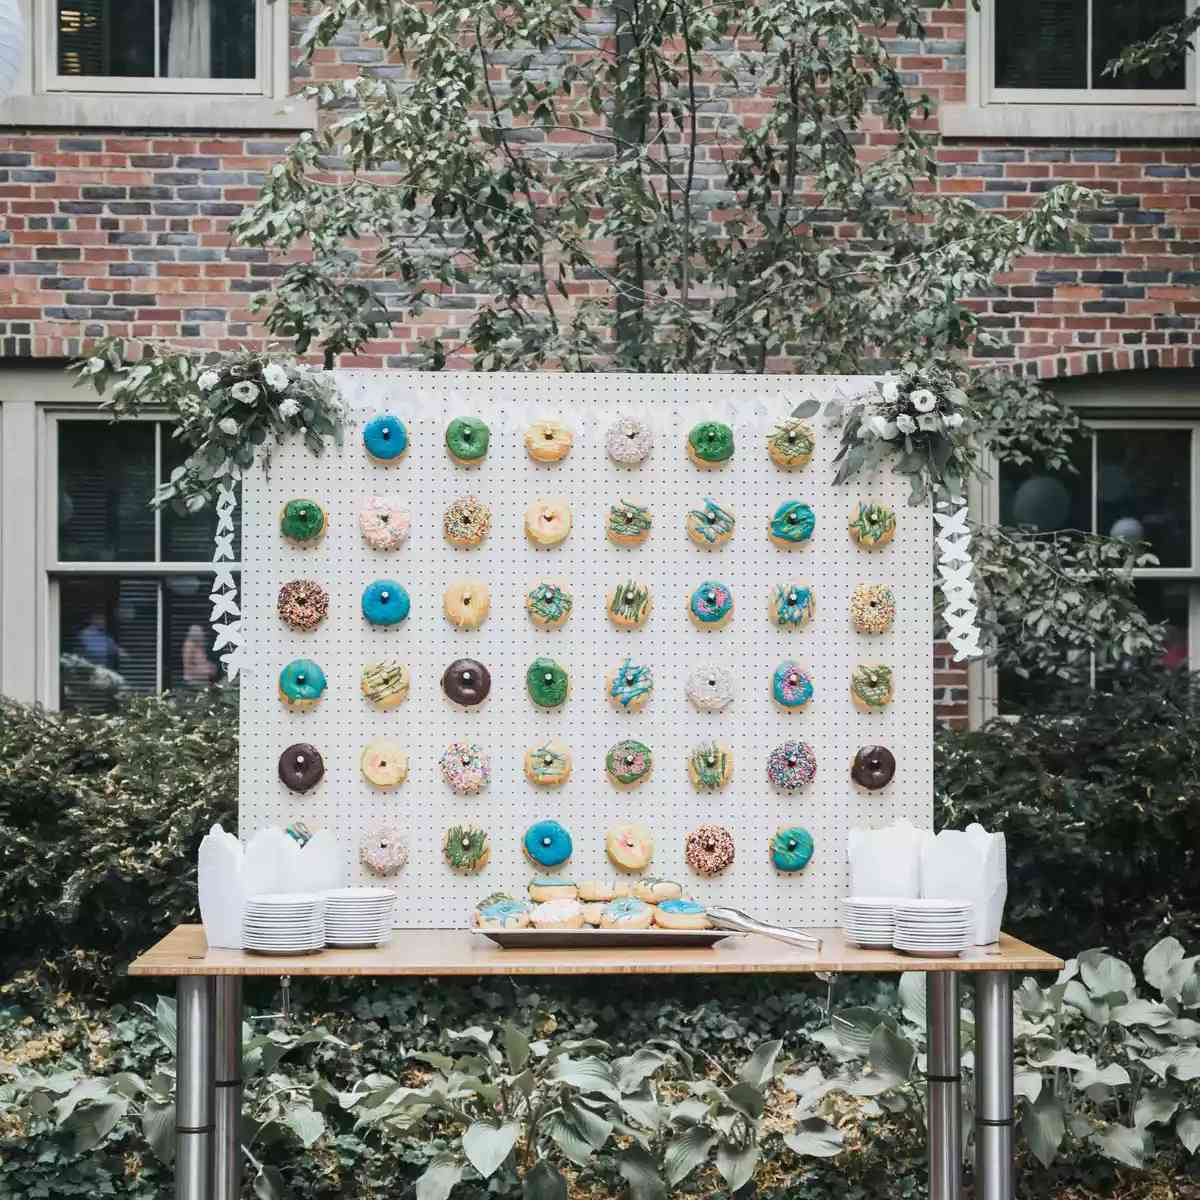 Donut wall featuring a spectrum of galaxy-inspired donuts